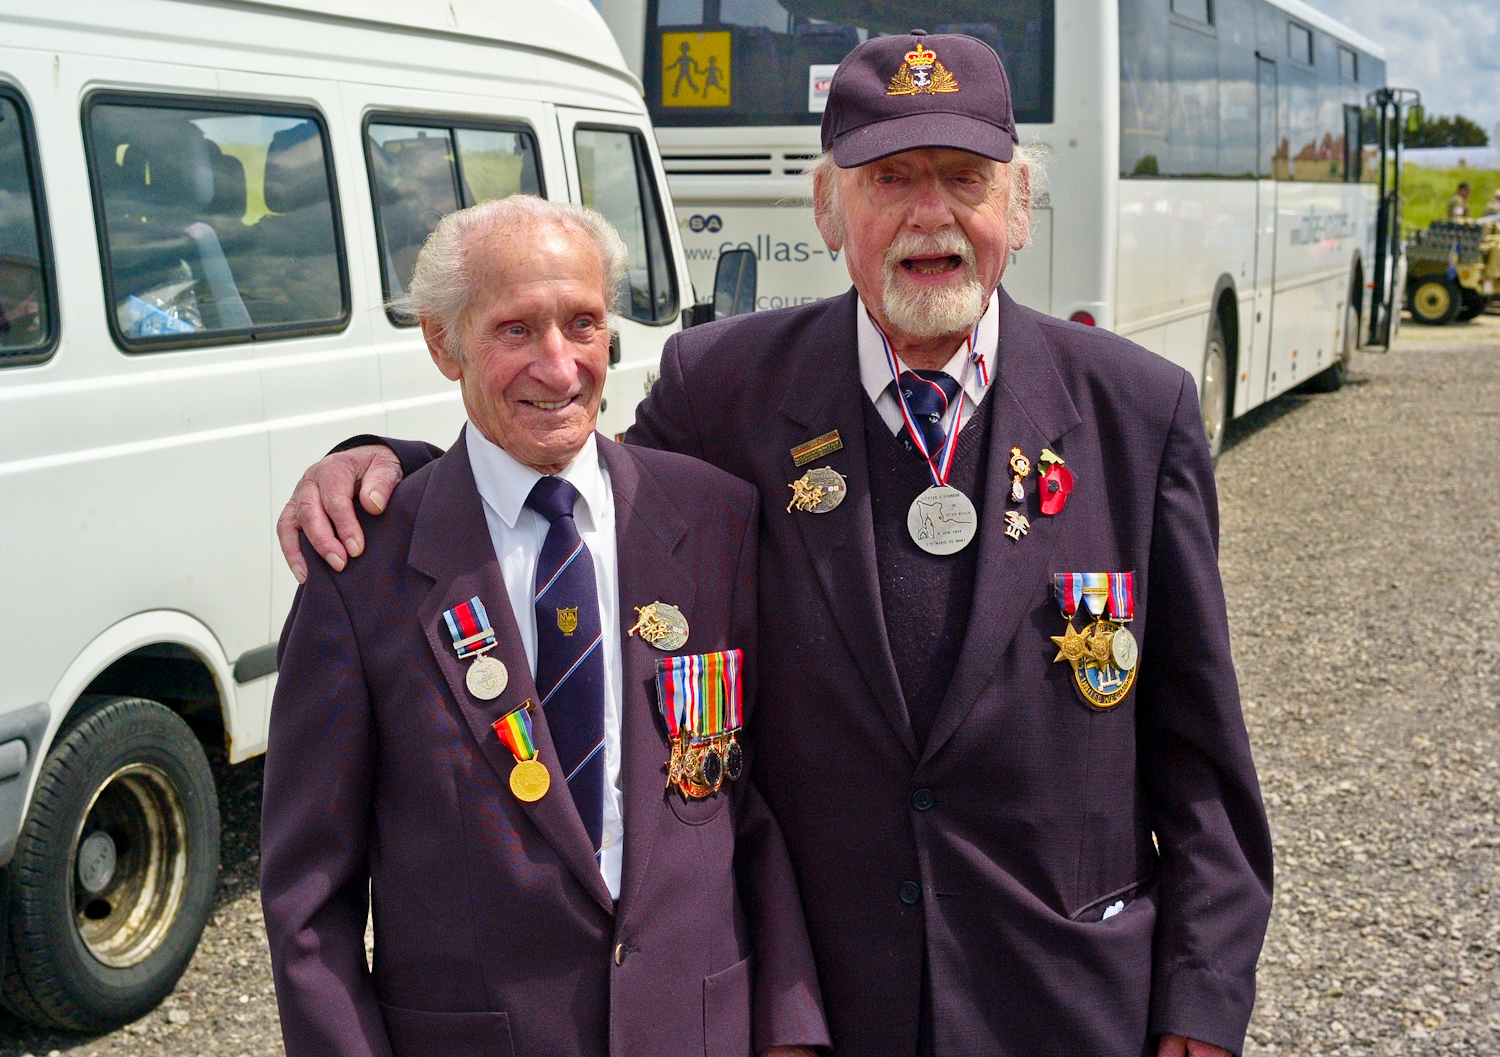 Ernie Covill and Peter Scott. Two friends from the 67th anniversary. We were so pleased to see them again!